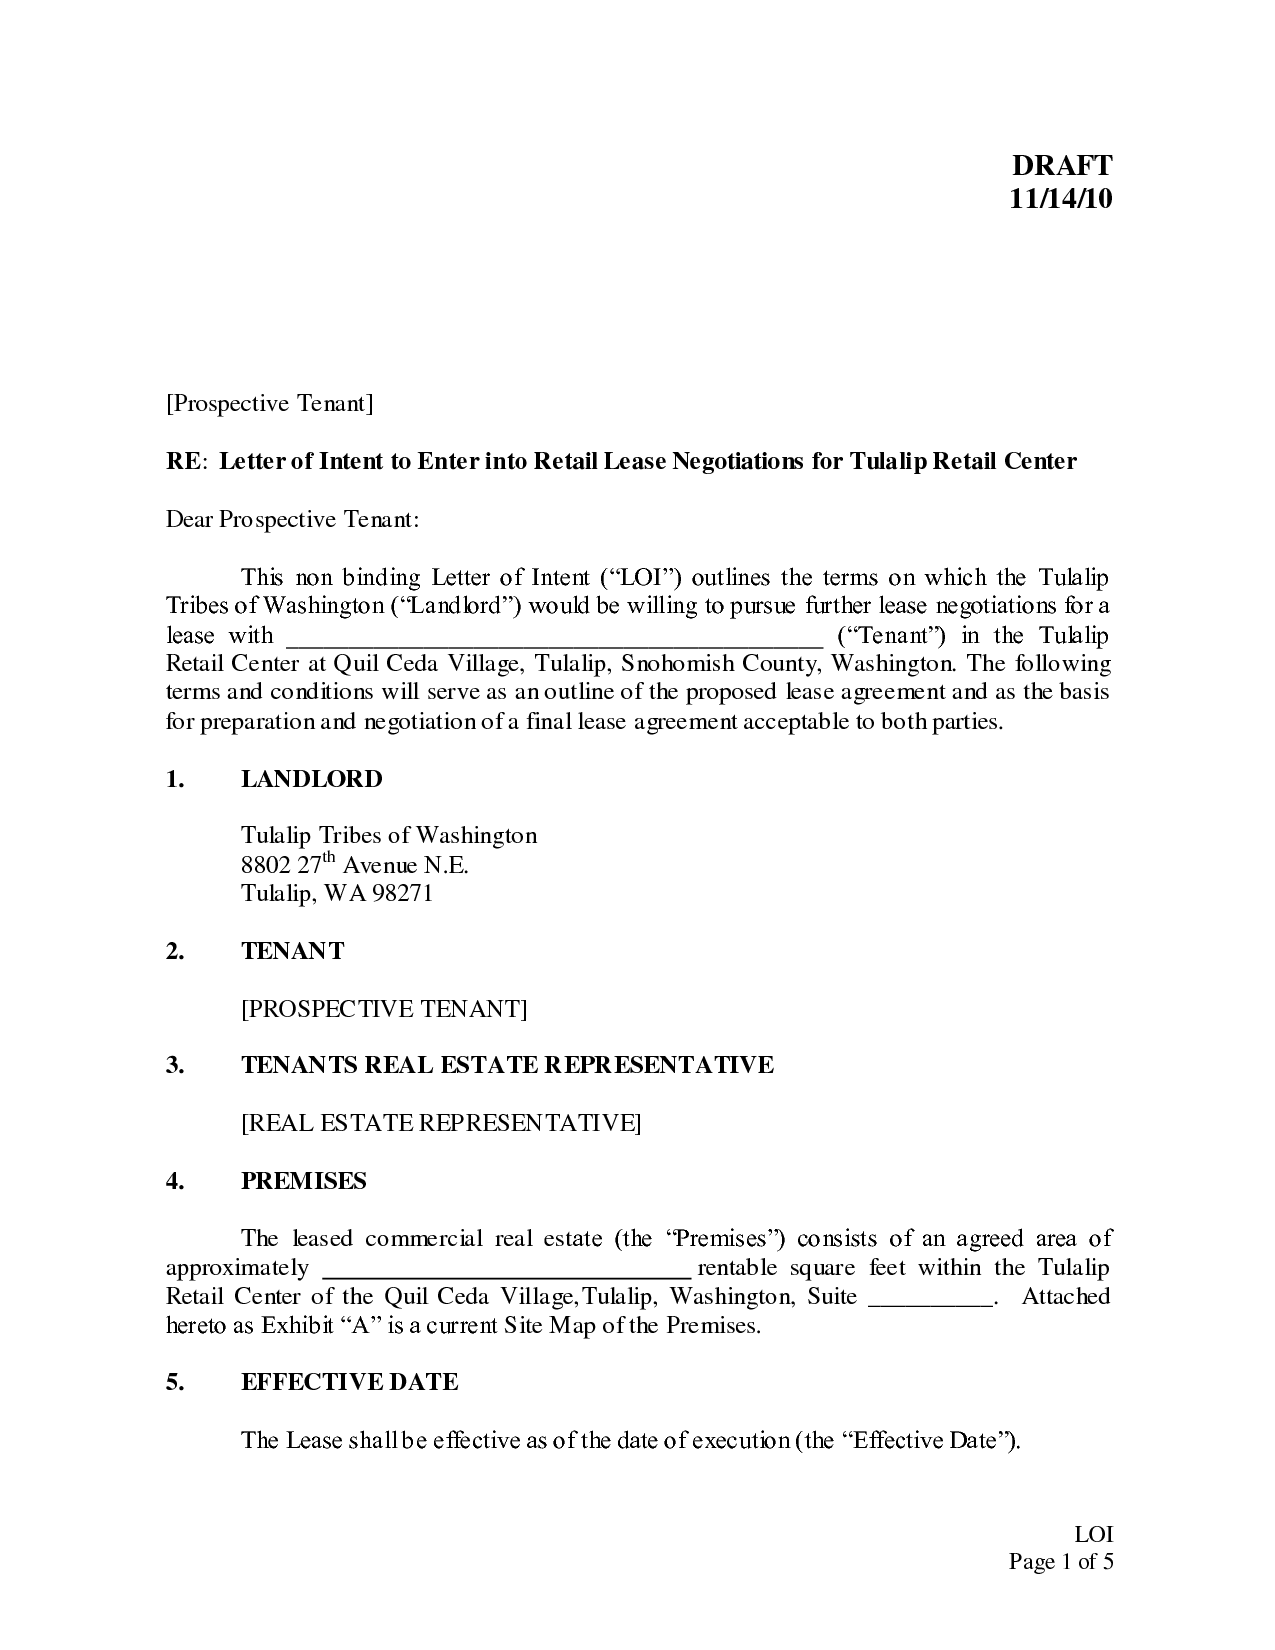 Letter Of Intent Commercial Lease Template